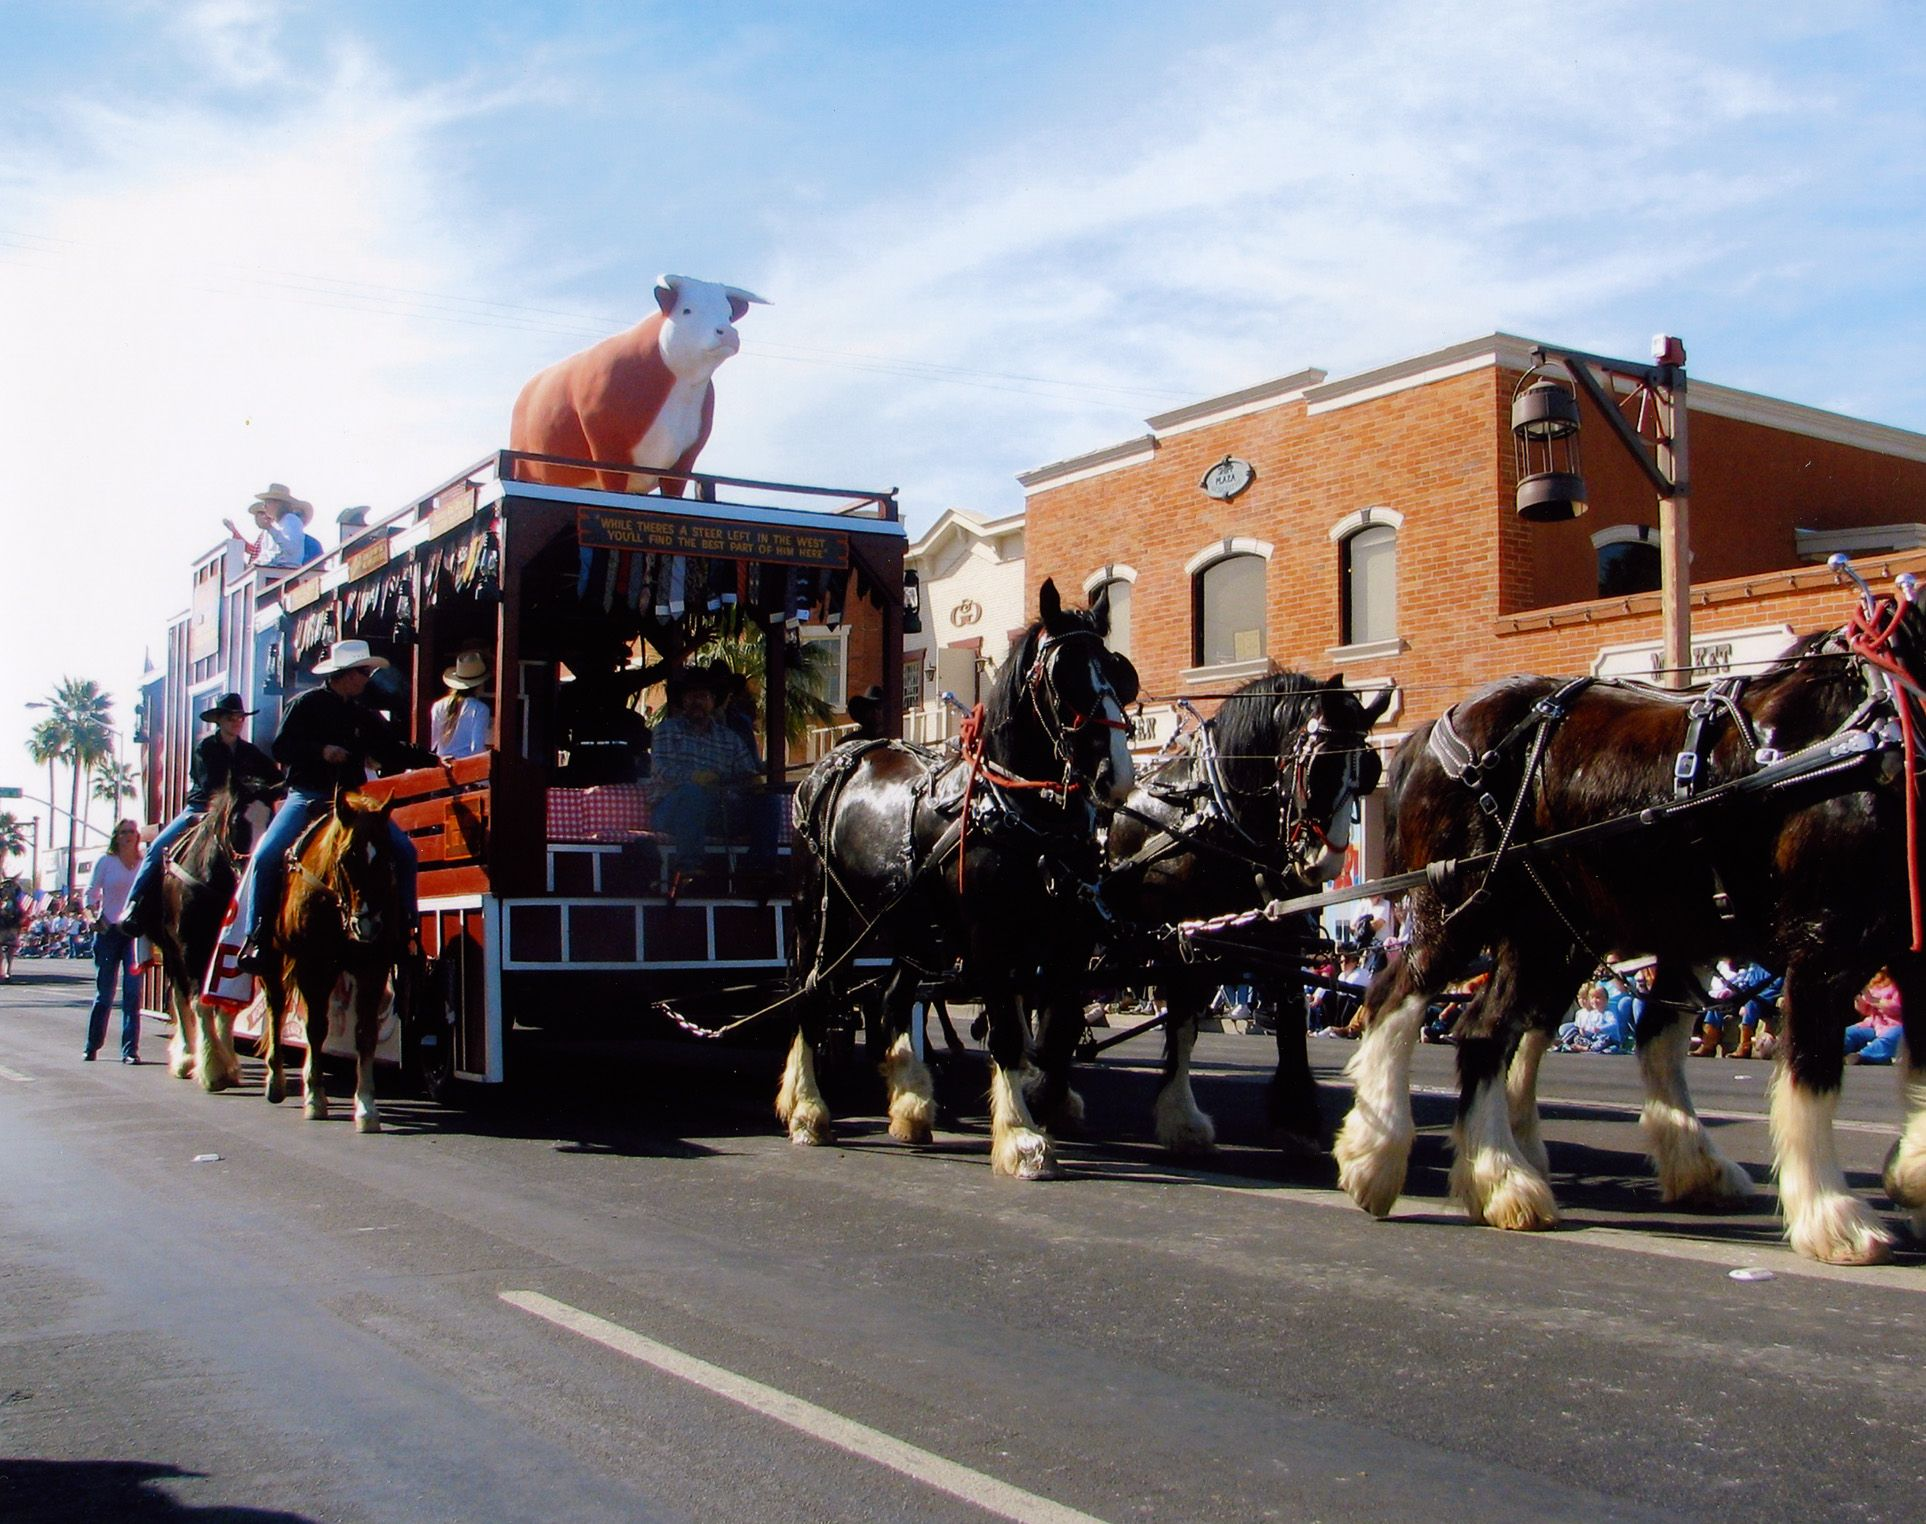 A Photo Of The Pinnacle Peak Patio Steakhouse Float In The Parade Del Sol  Parade In